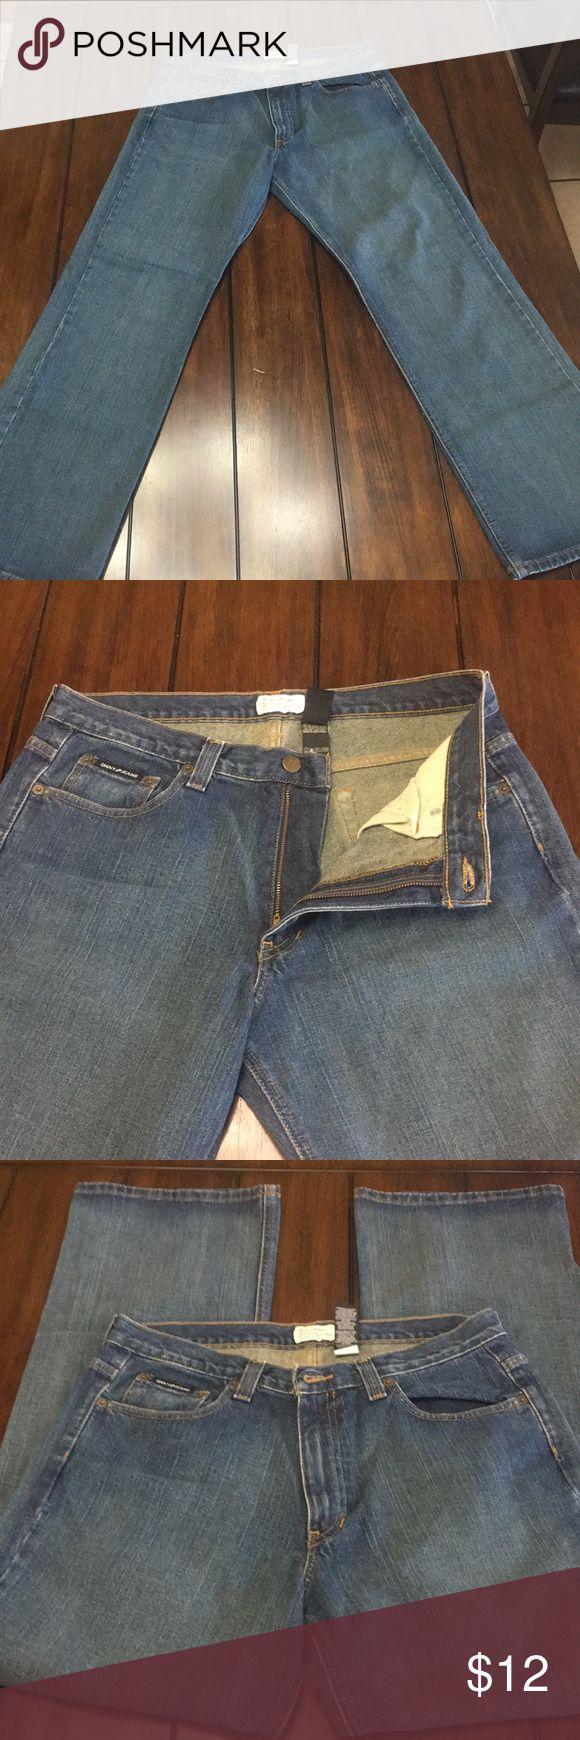 DKNY Mens Jeans DKNY Mens Jeans. Straight leg. Size 33X32. In good used condition. Dkny Jeans Straight